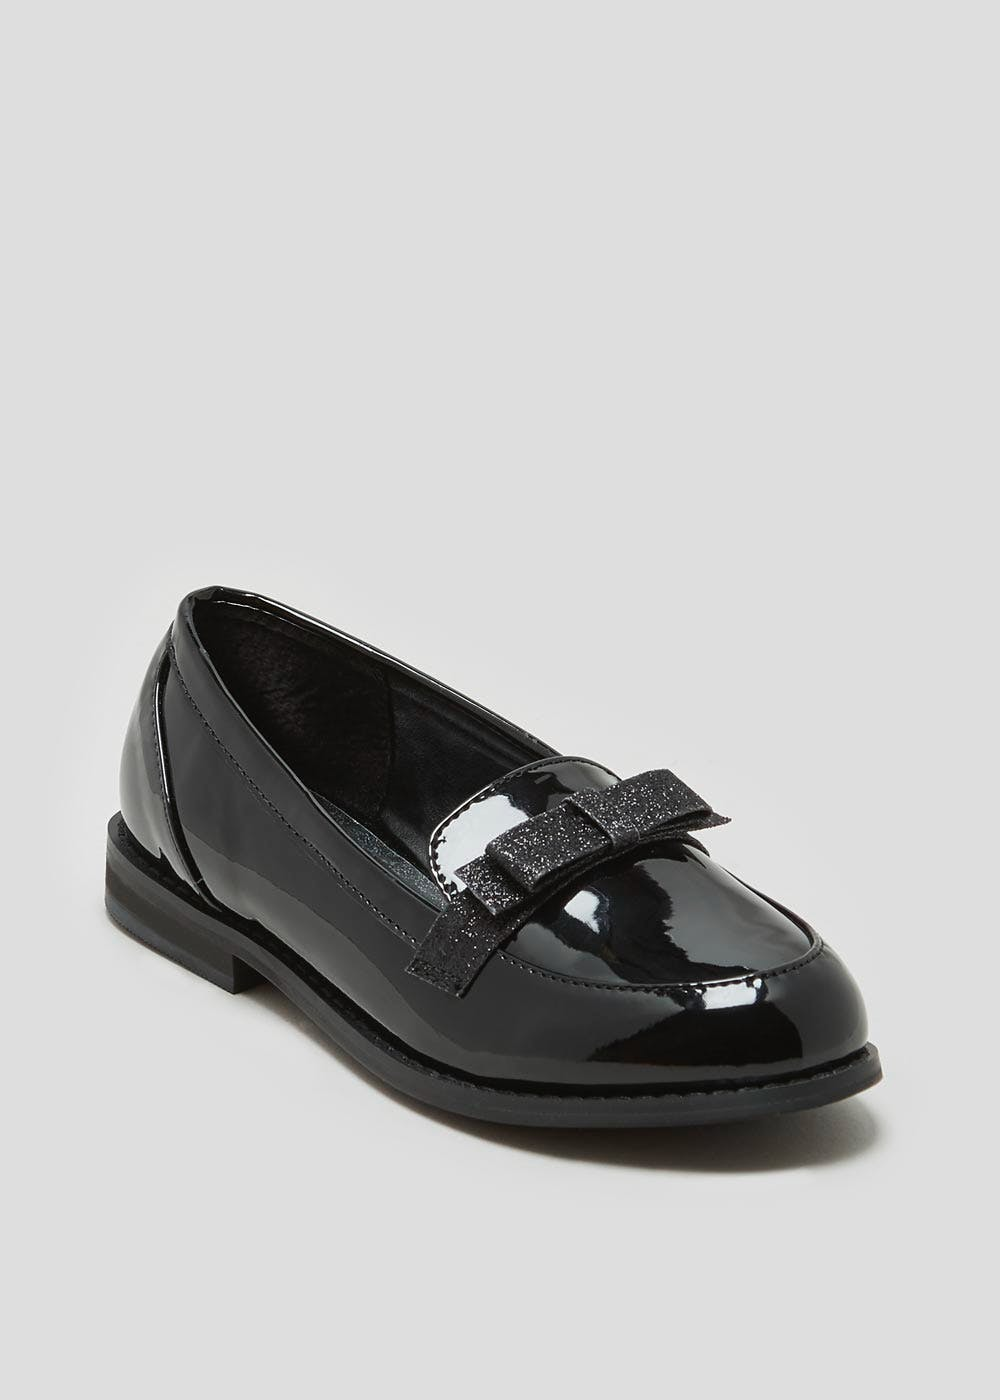 Girls Wide Fit Patent Loafer School